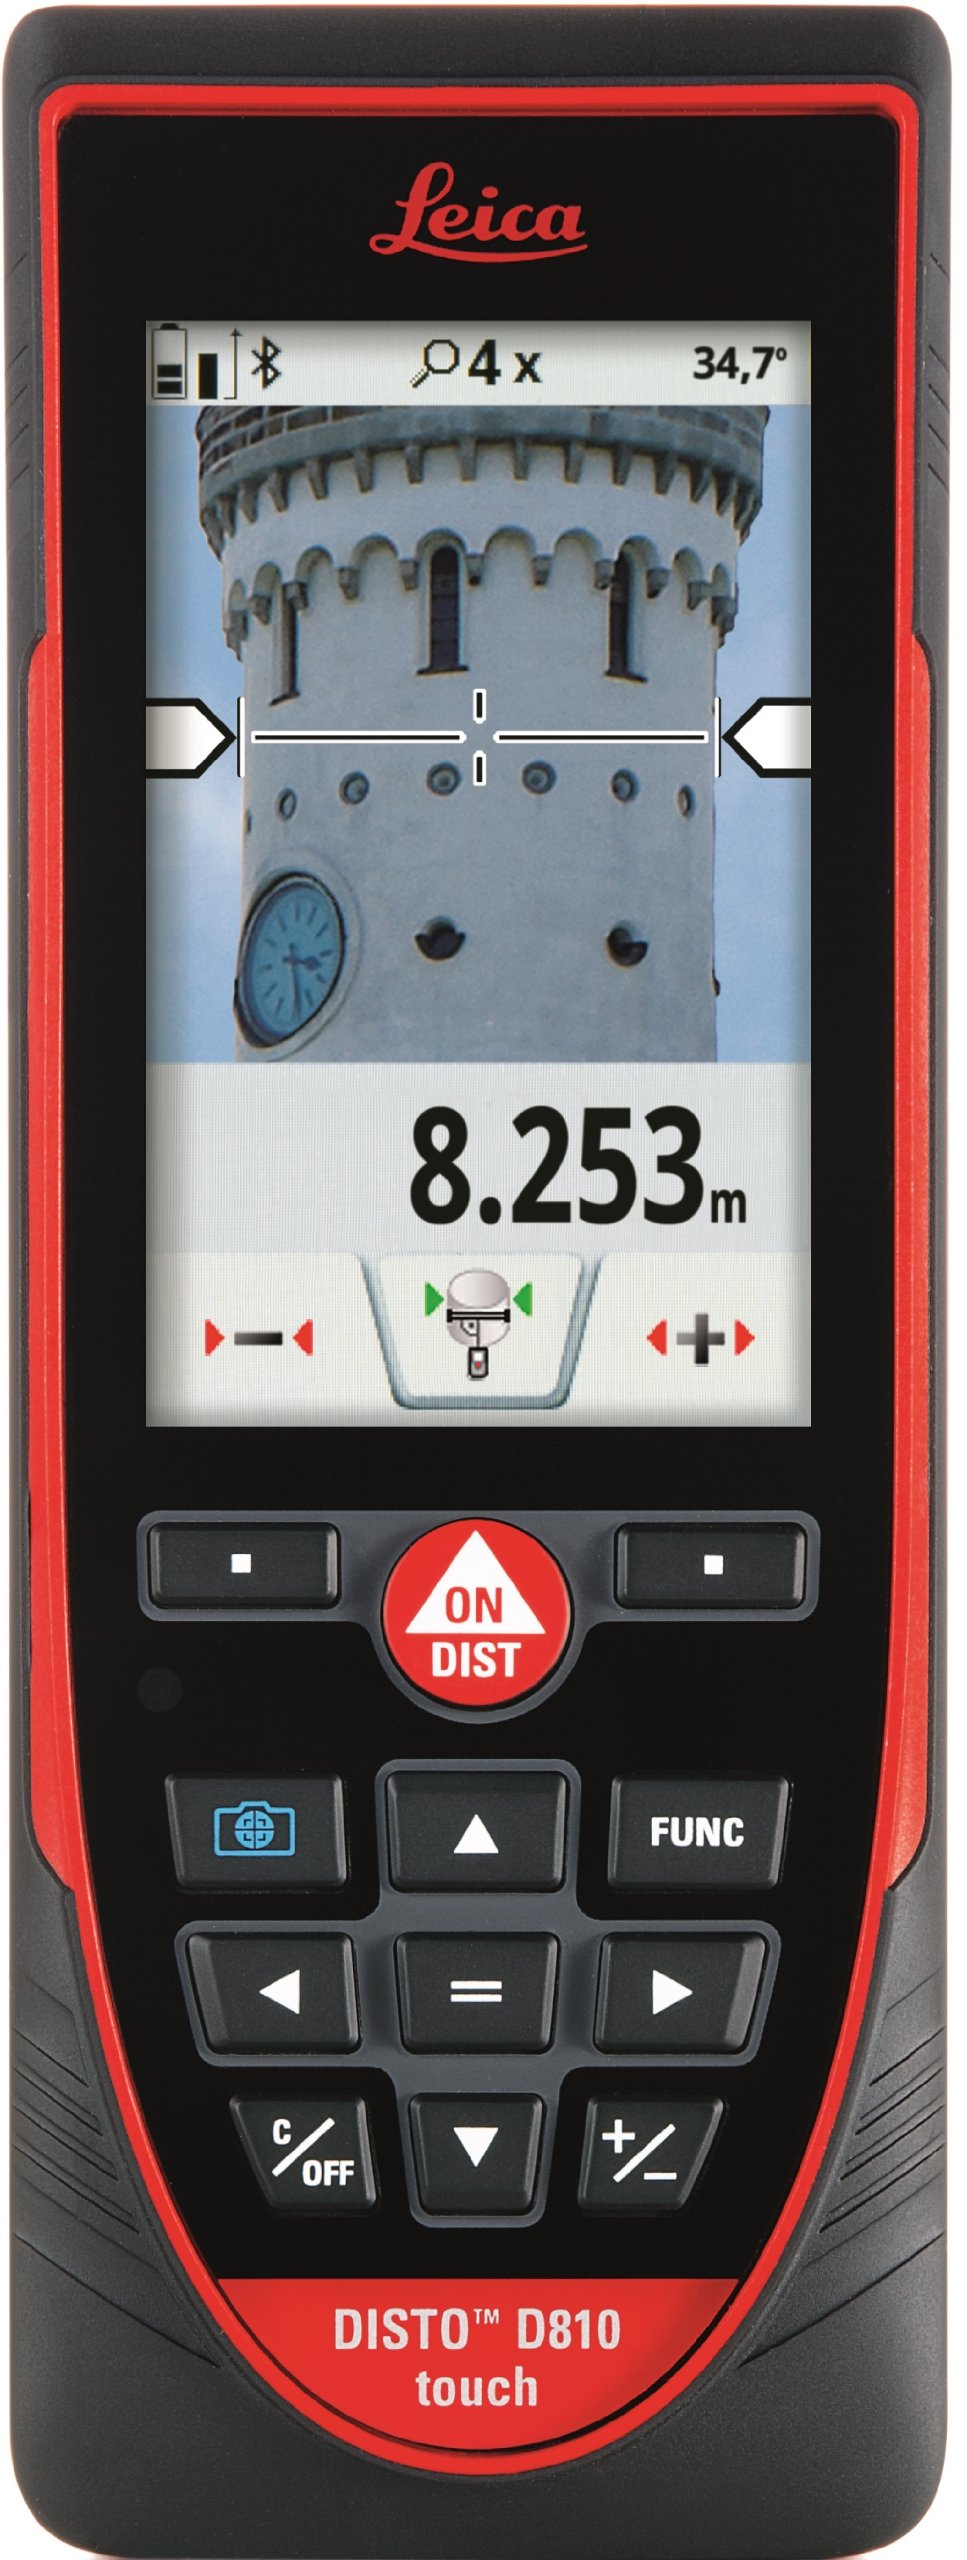 Leica DISTO D810 Touch 660ft Laser Distance Measurer w/Bluetooth and 1mm Accuracy, Red/Black by Leica Geosystems